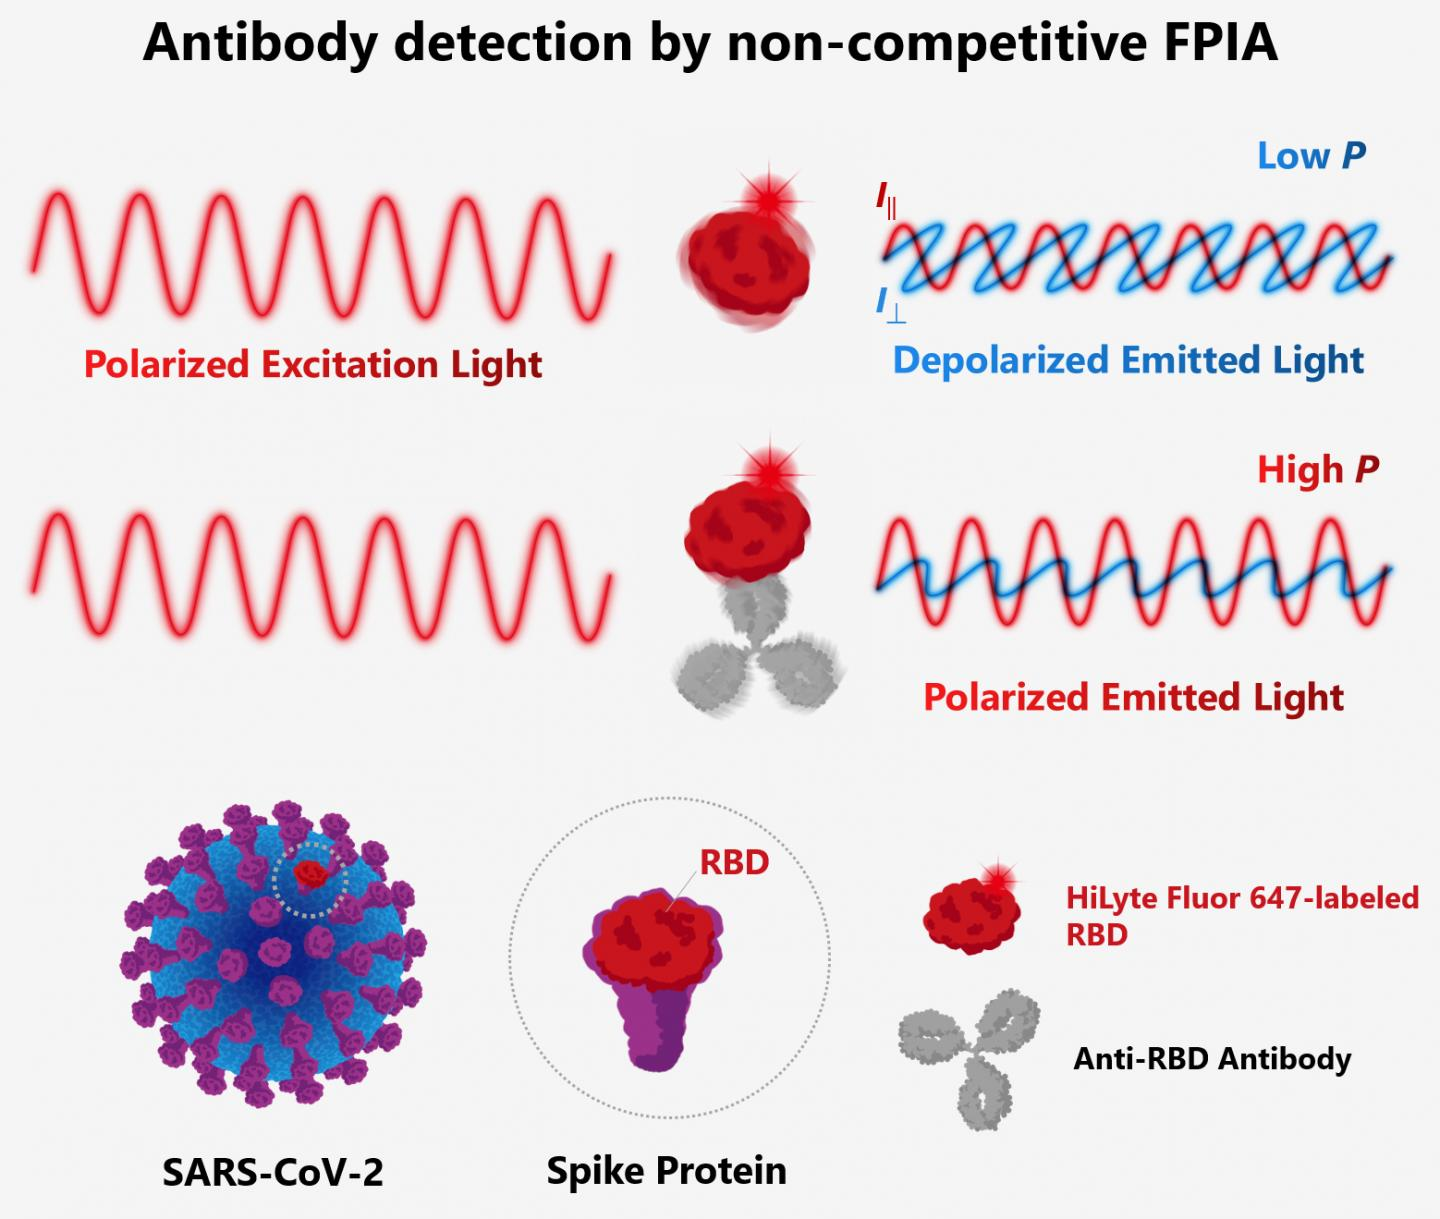 The principle behind FPIA for detection of antibodies against SARS-CoV-2